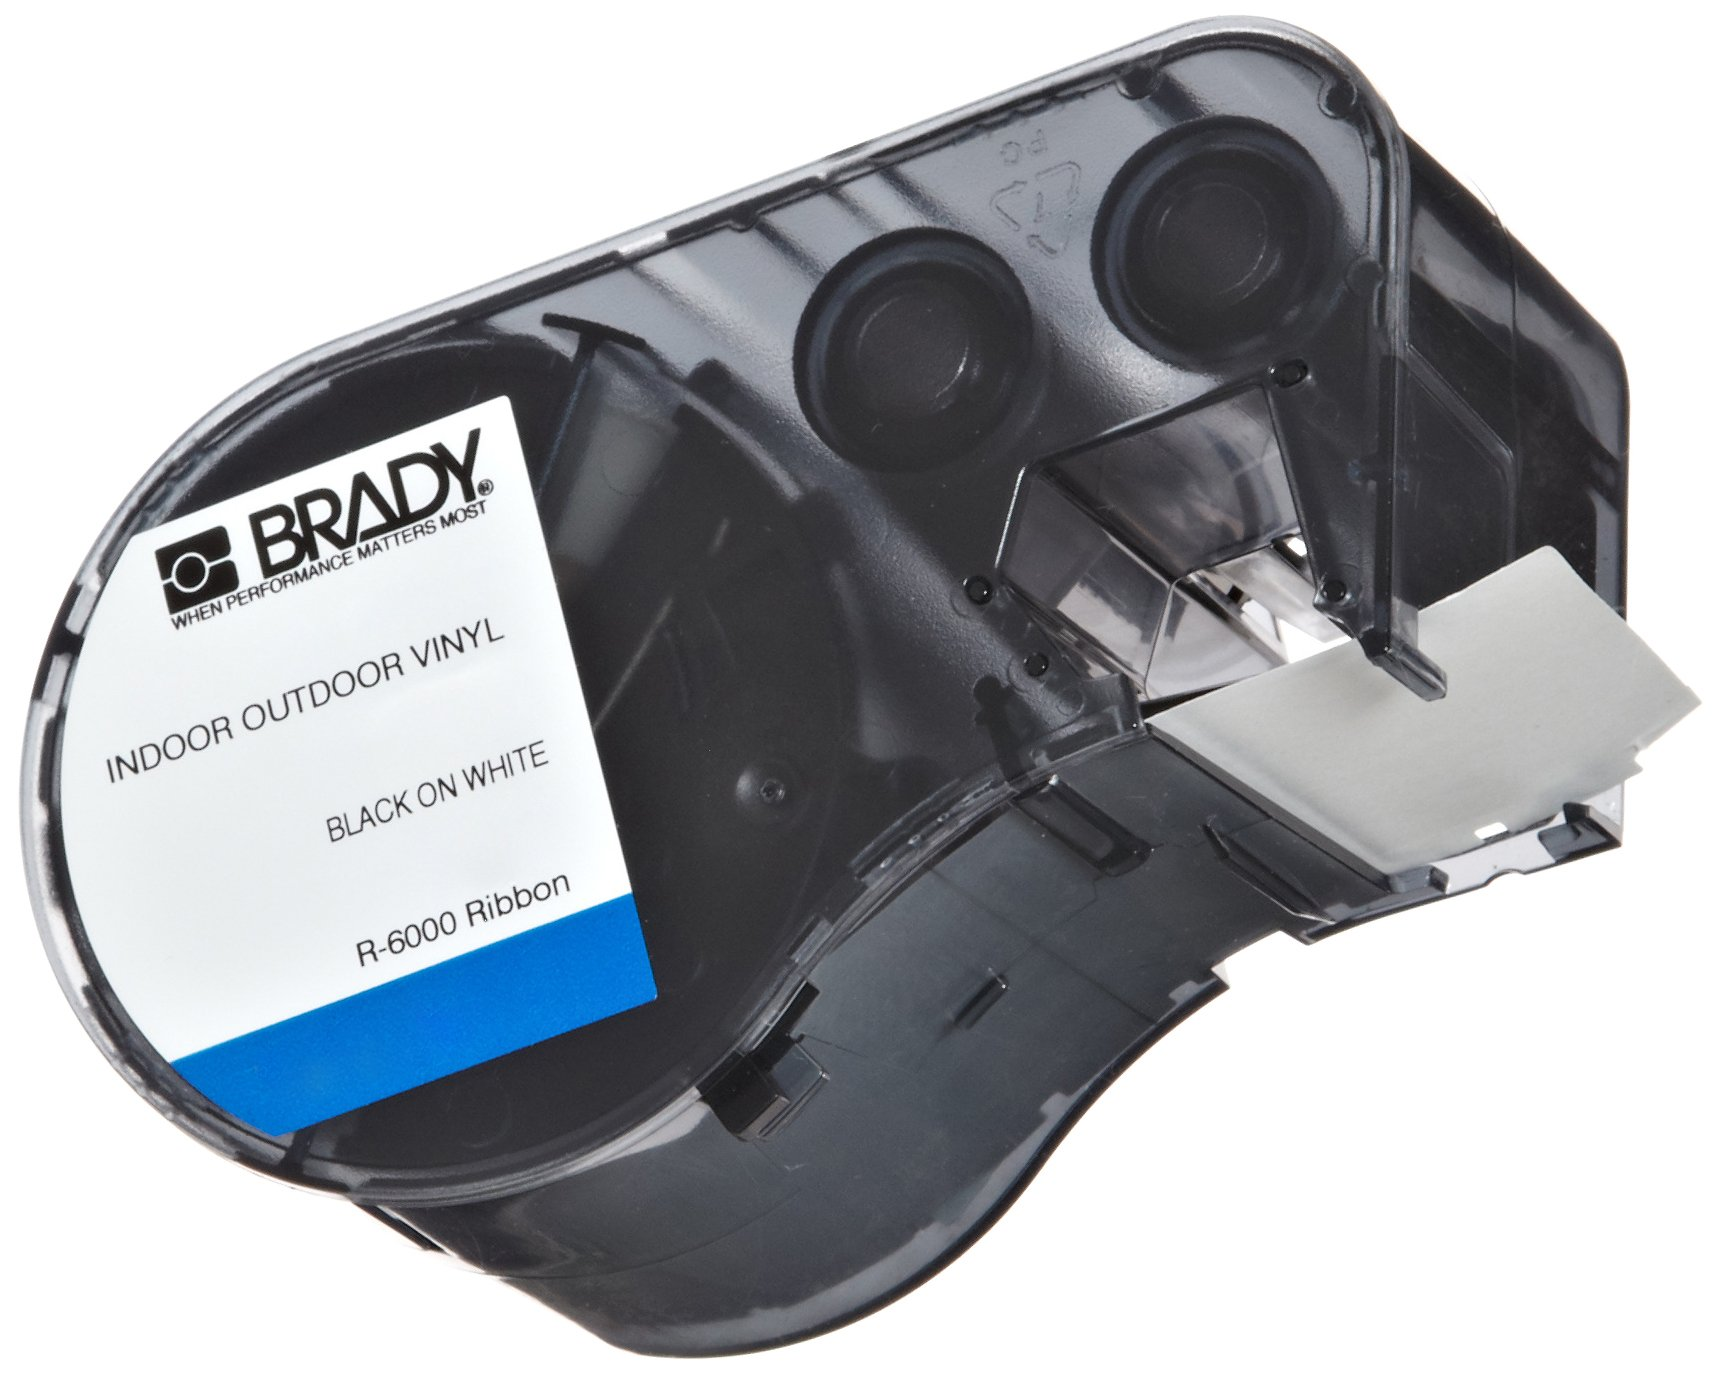 Brady High Adhesion Vinyl Label Tape (MC-1500-595-WT-BK) - Black on White Vinyl Film - Compatible with BMP51 and BMP53 Label Printers - 25' Length, 1.5'' Width